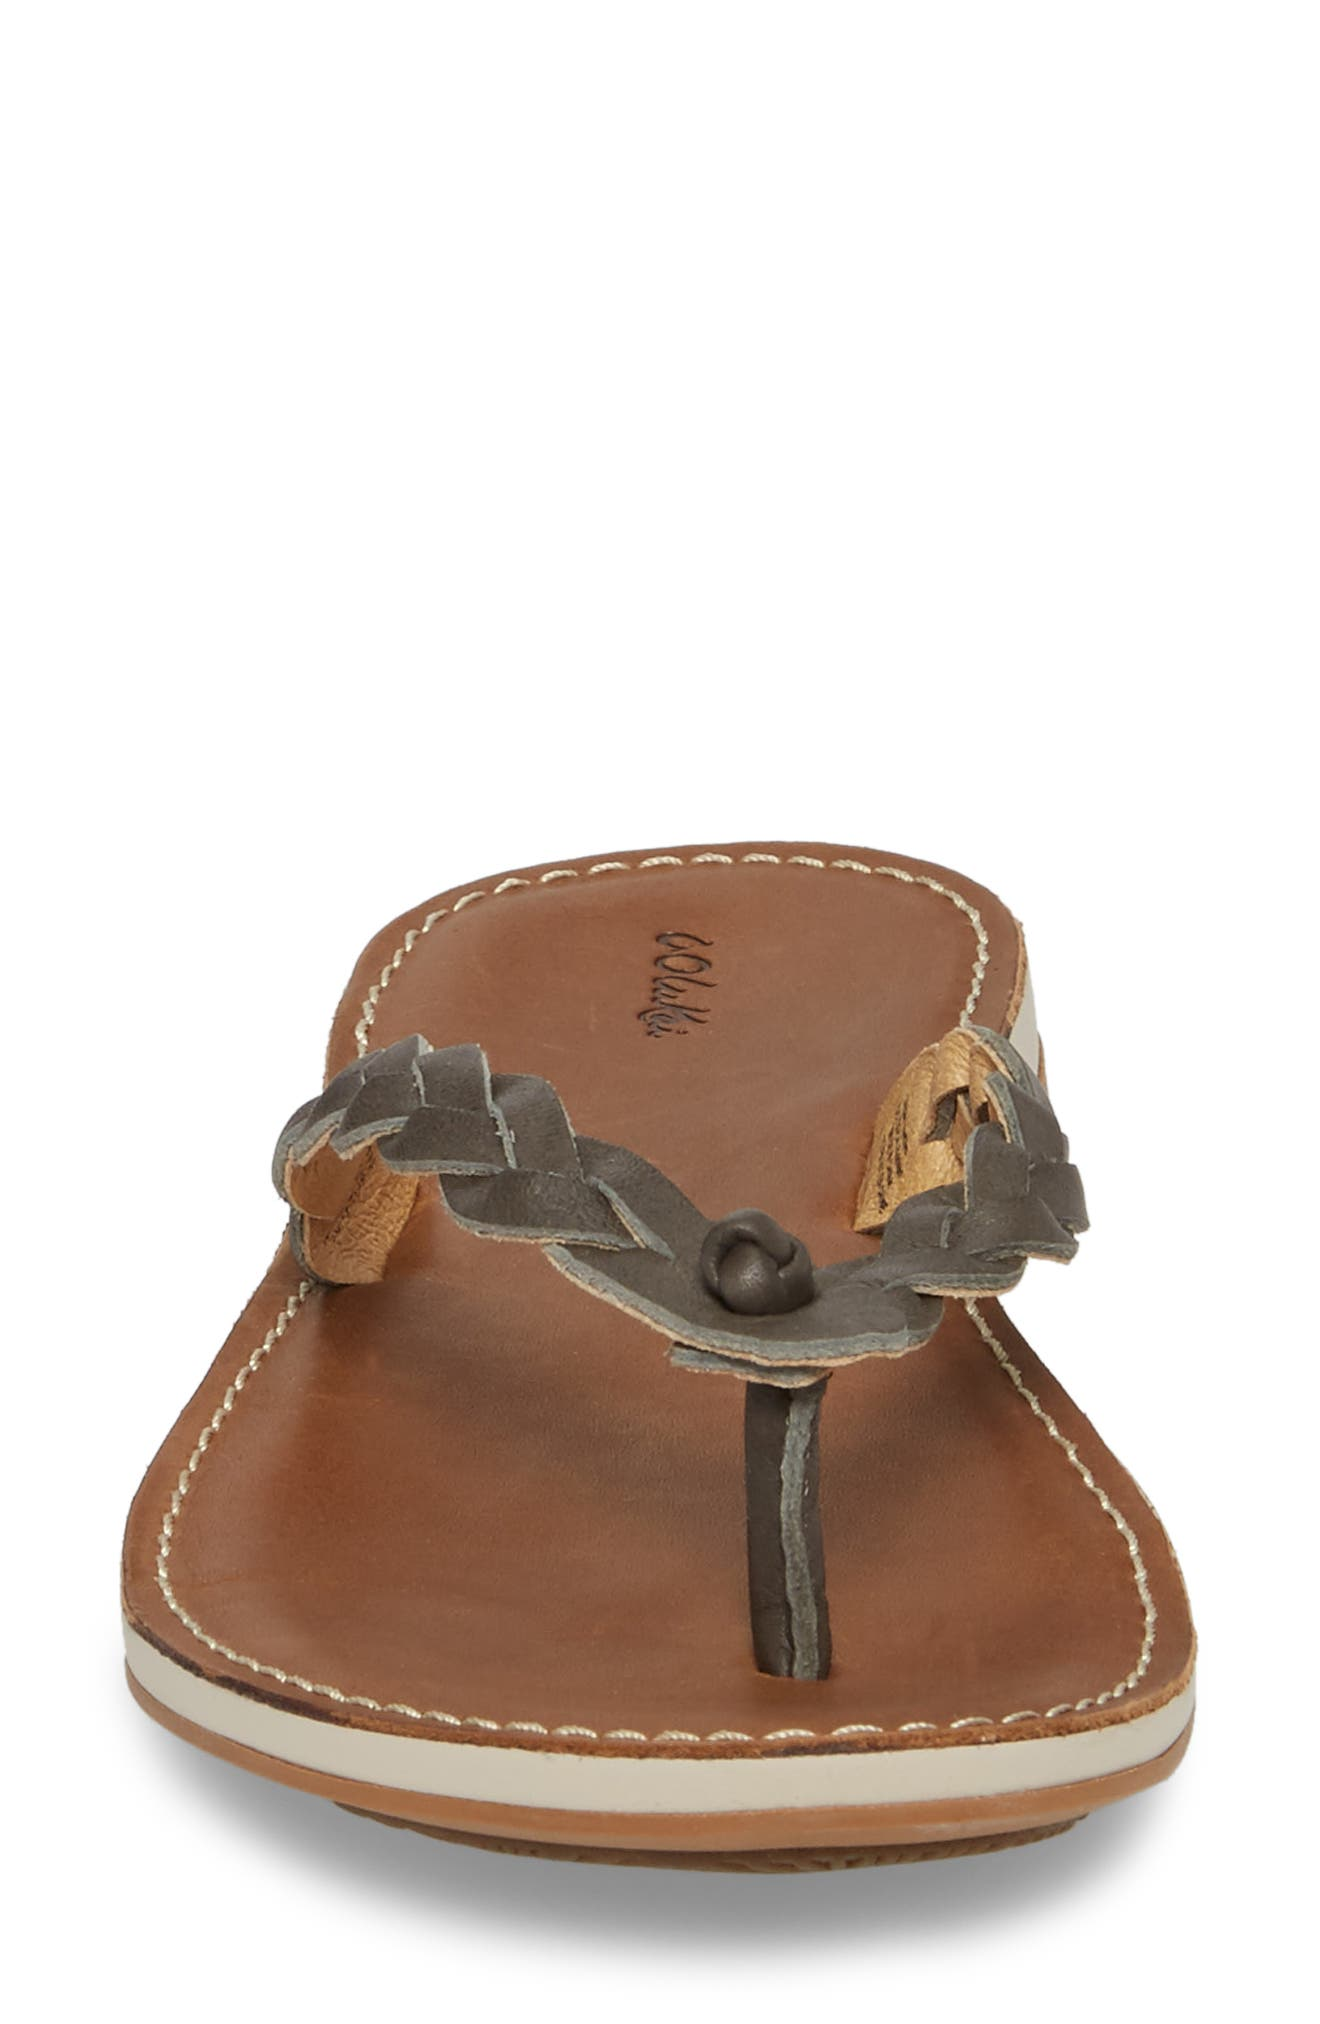 Kahiko Flip-Flop,                             Alternate thumbnail 4, color,                             SLATE/ TAN LEATHER